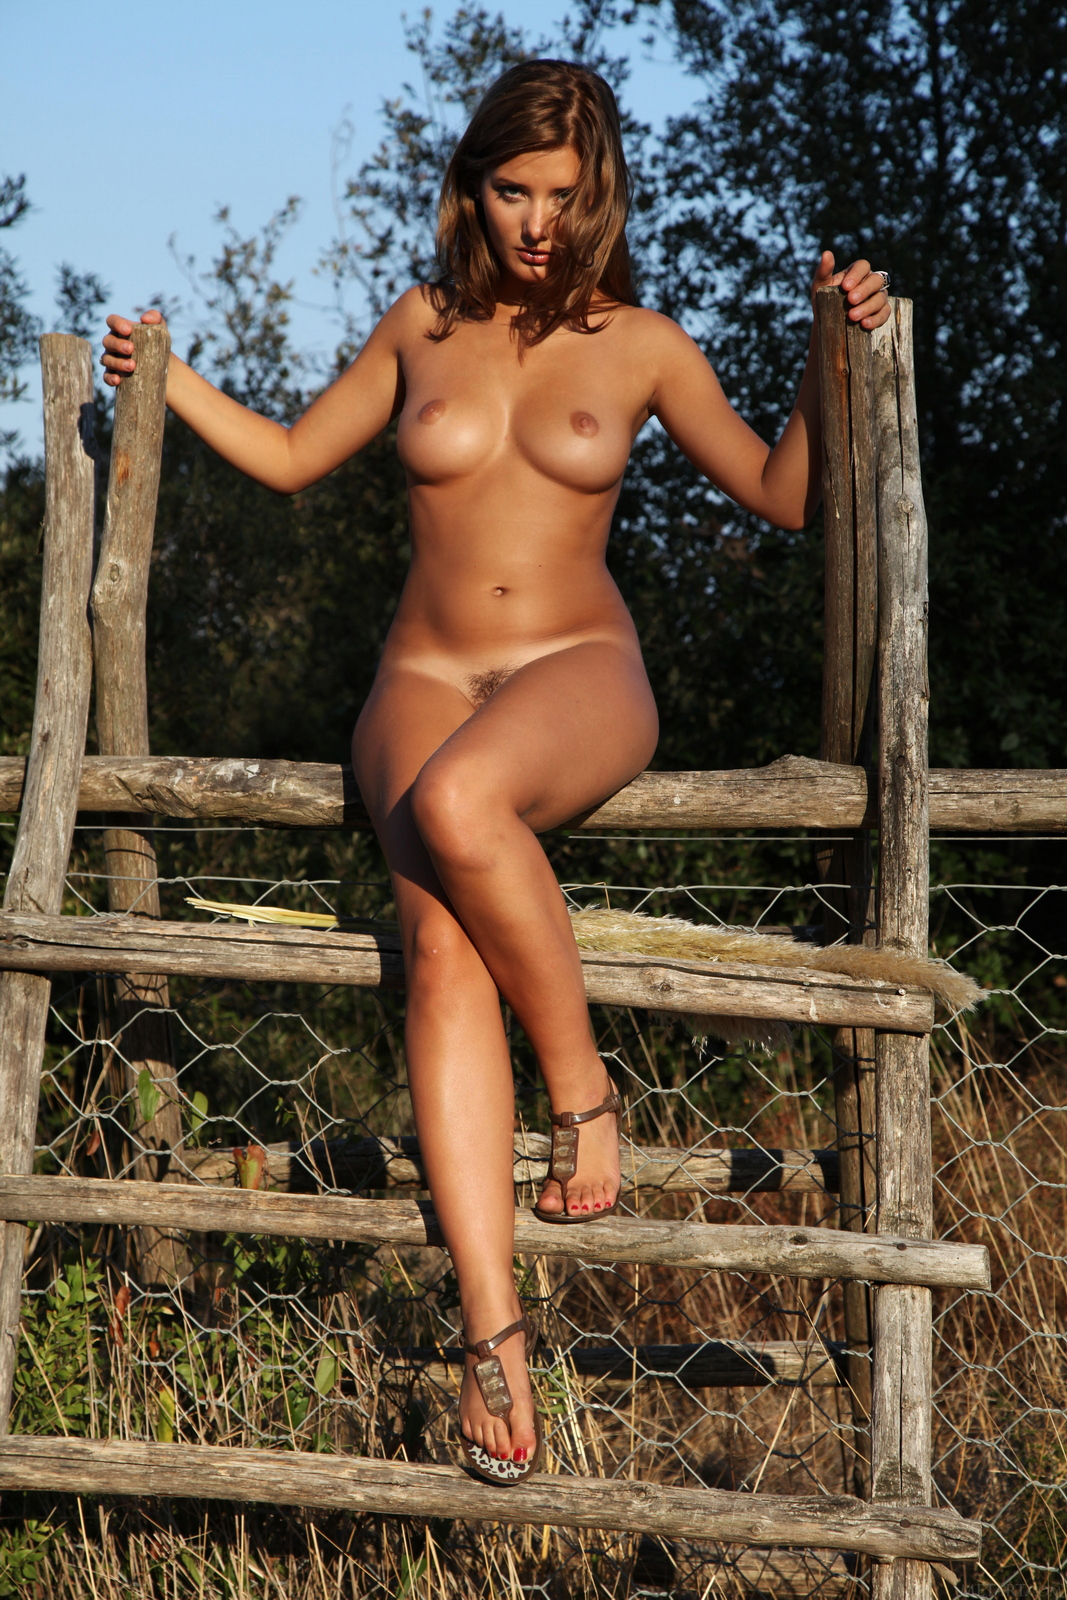 edwige-a-boobs-naked-outdoor-woods-metart-19